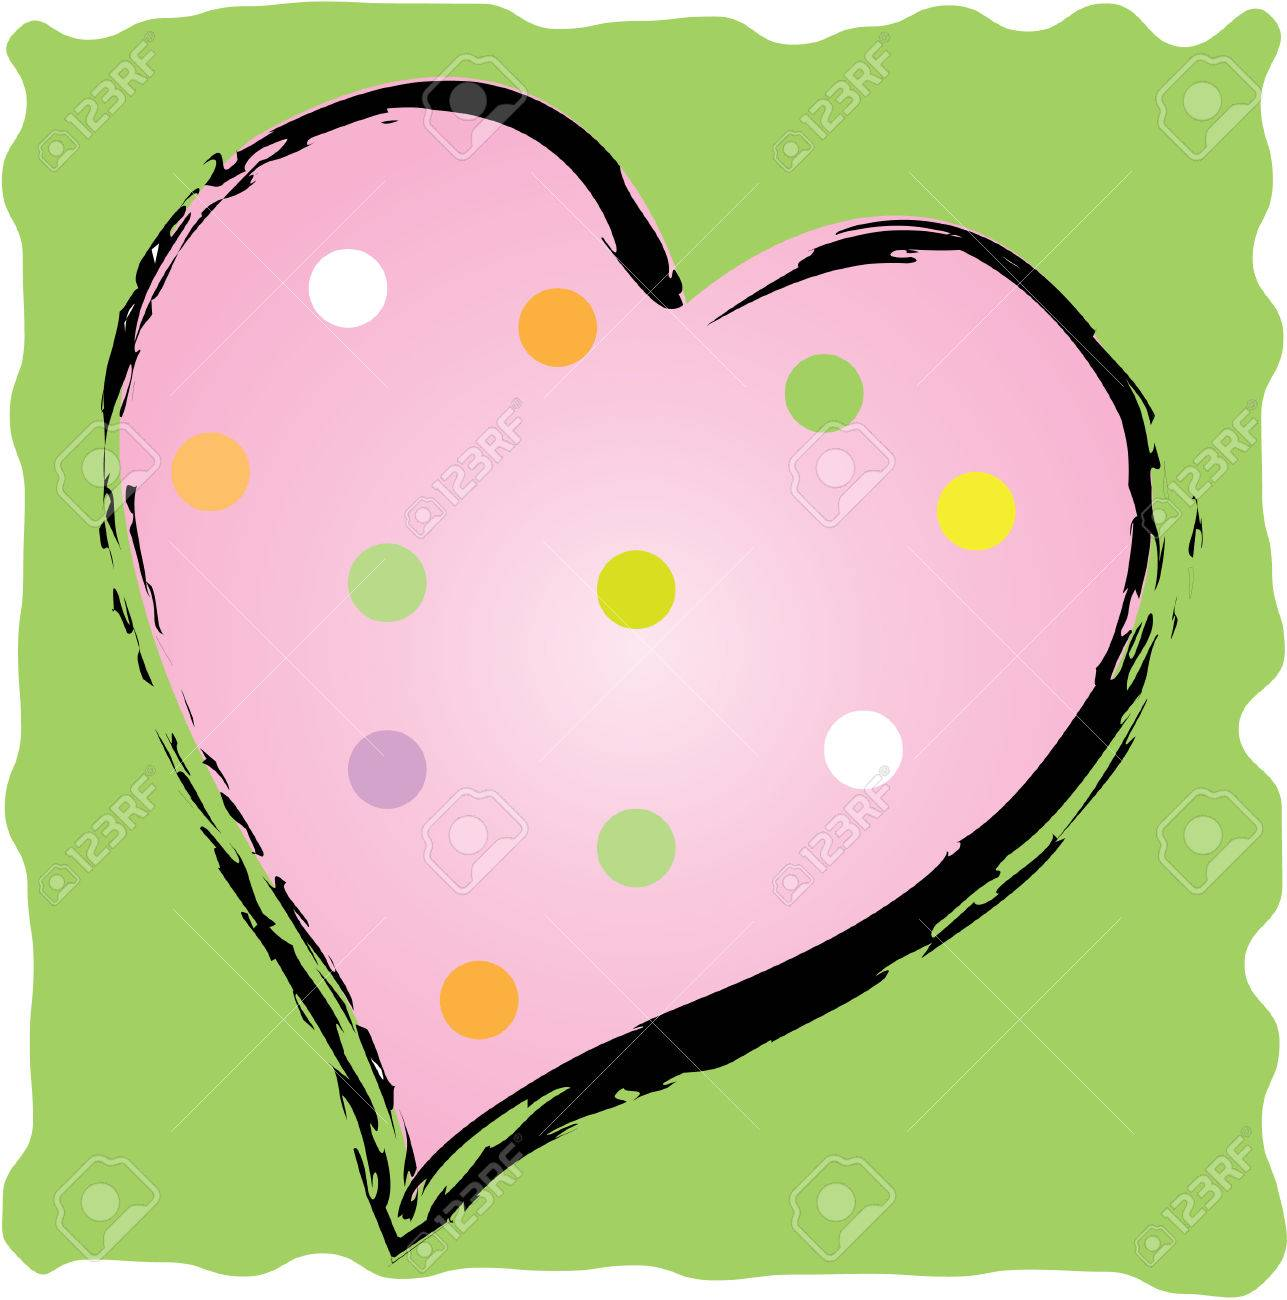 fun polkadot heart with brush stroke outline royalty free cliparts